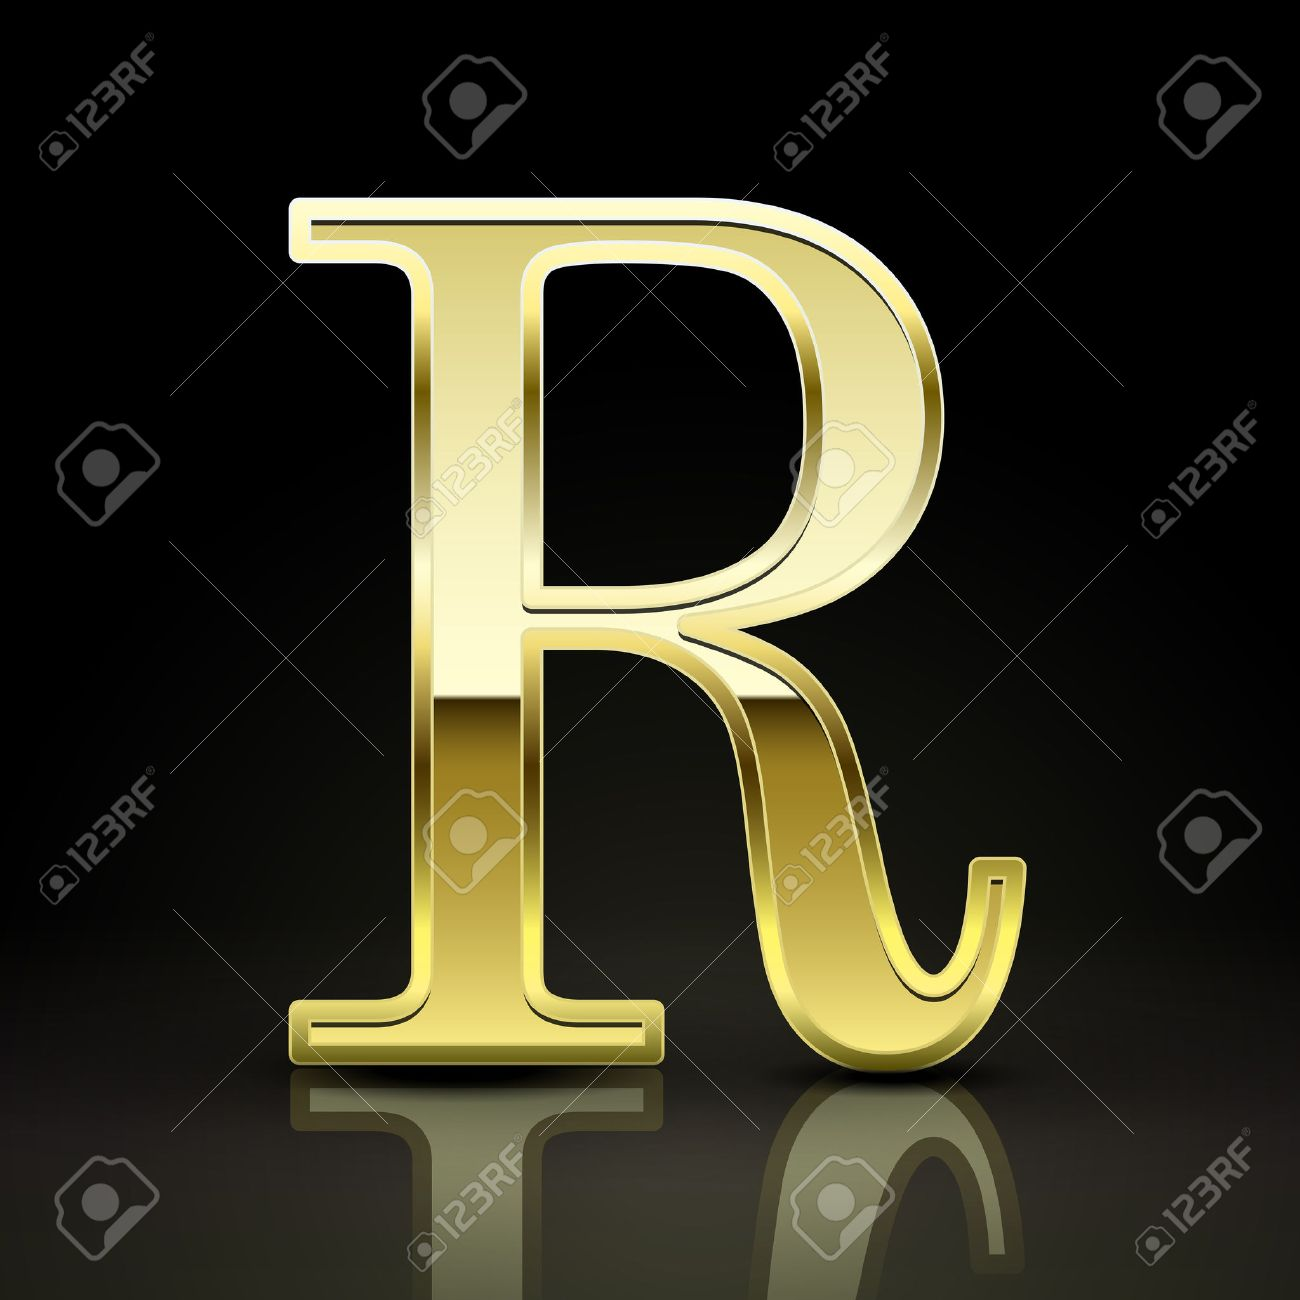 3d Elegant Golden Letter R Isolated On Black Background Royalty Free Cliparts Vectors And Stock Illustration Image 38549829